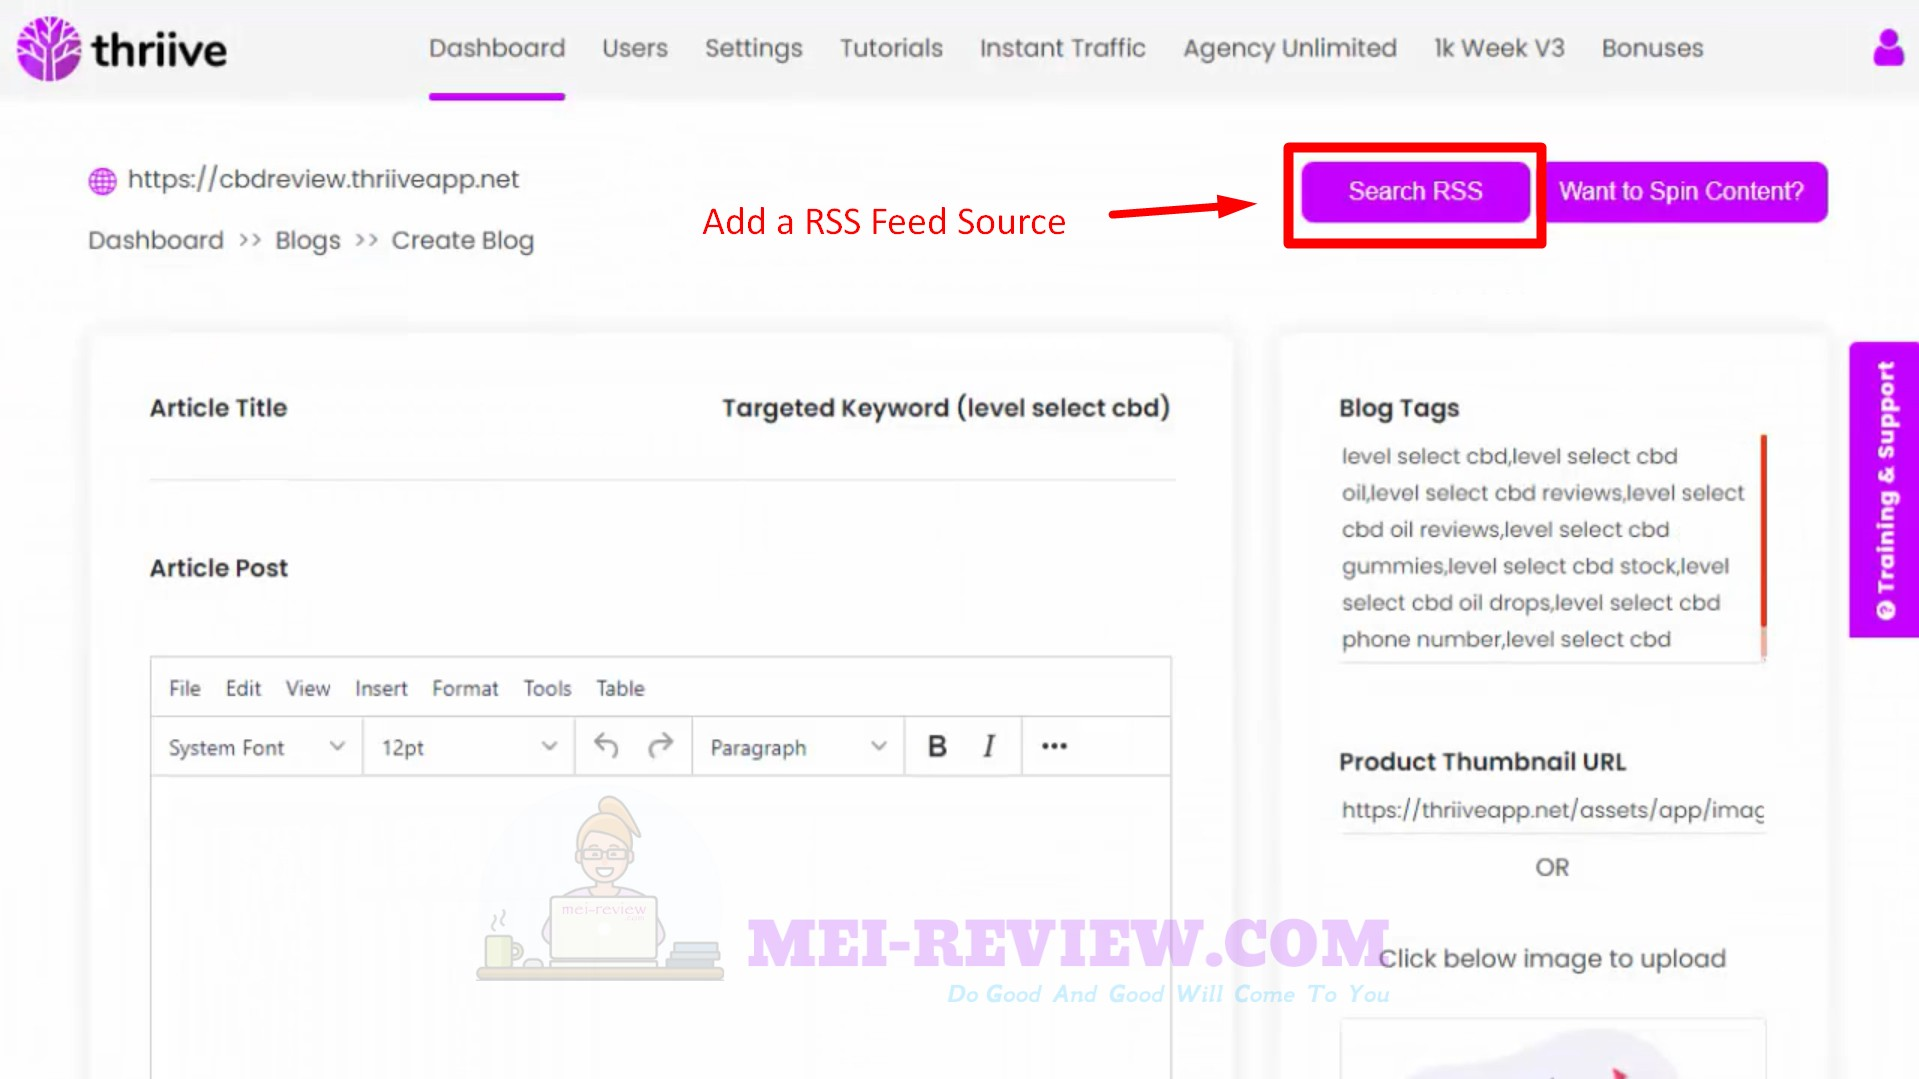 Thriive-Step-4-search-RSS